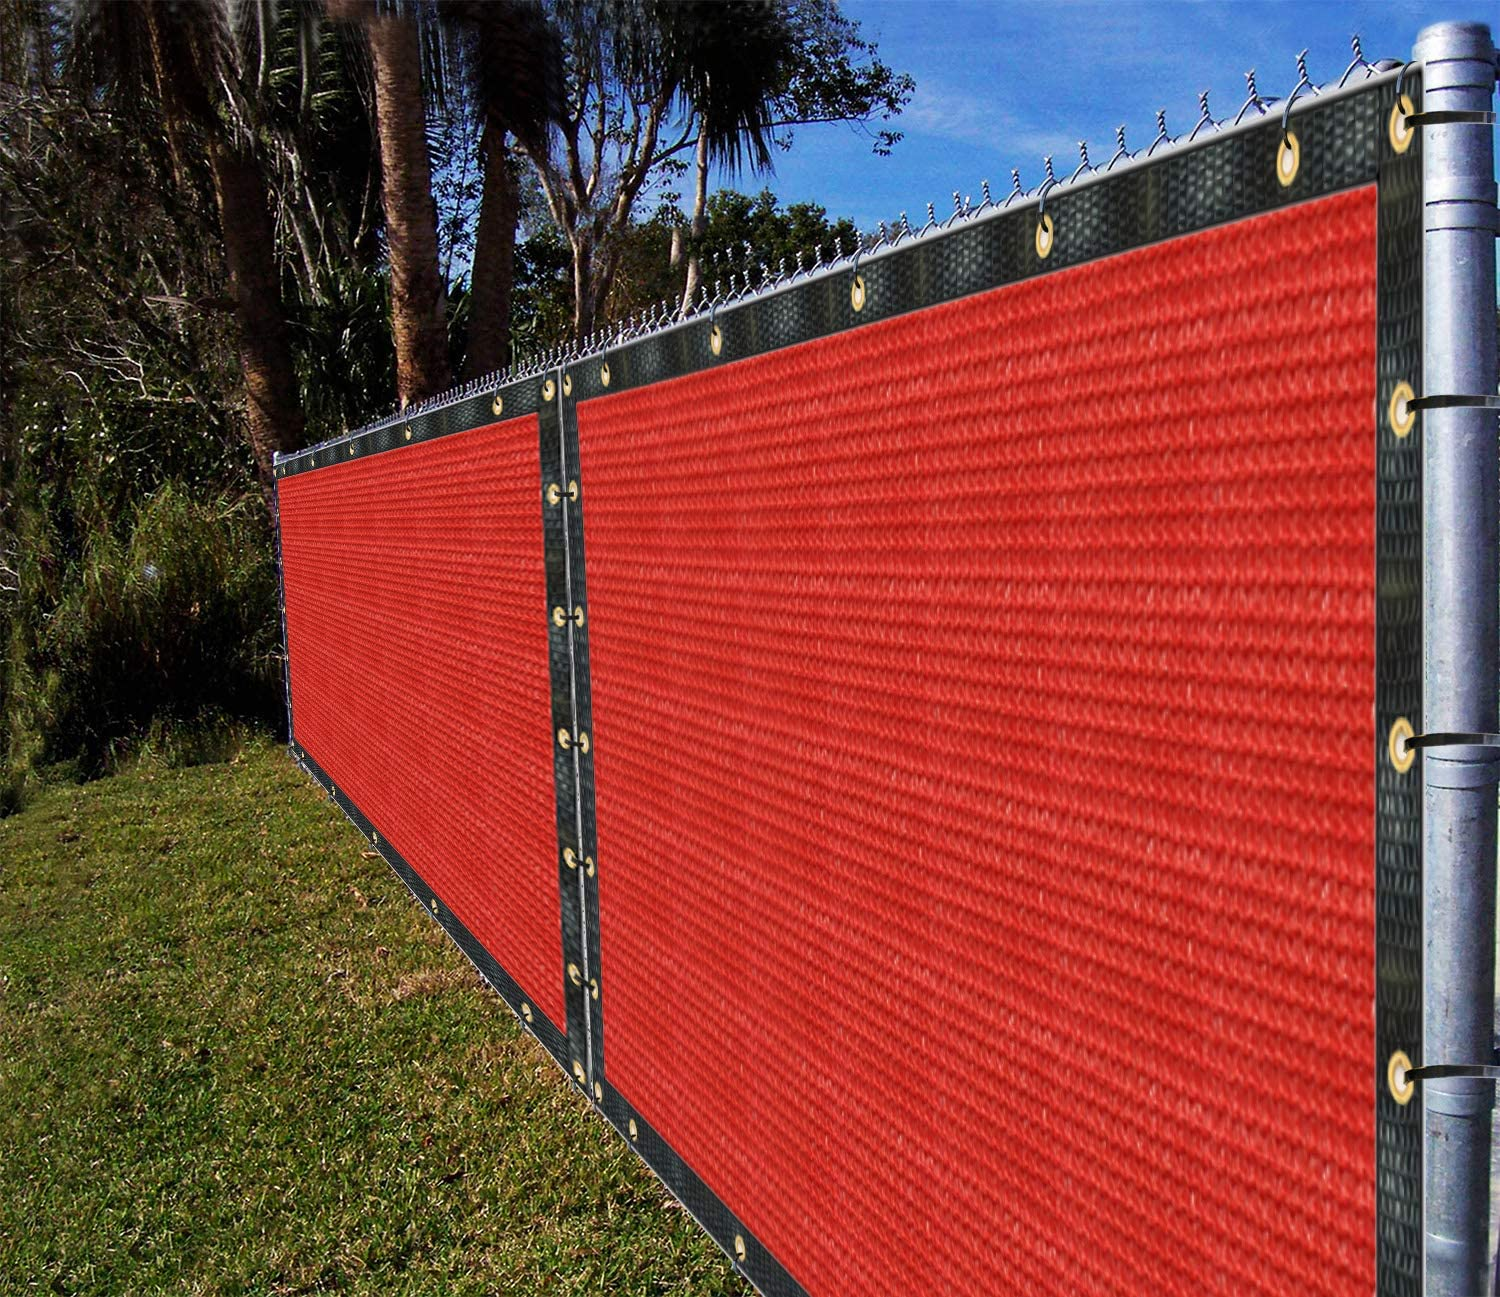 Ifenceview Sales of SALE items from new works 9' x 2' to We OFFer at cheap prices Cover 100' Screen Fence Privacy